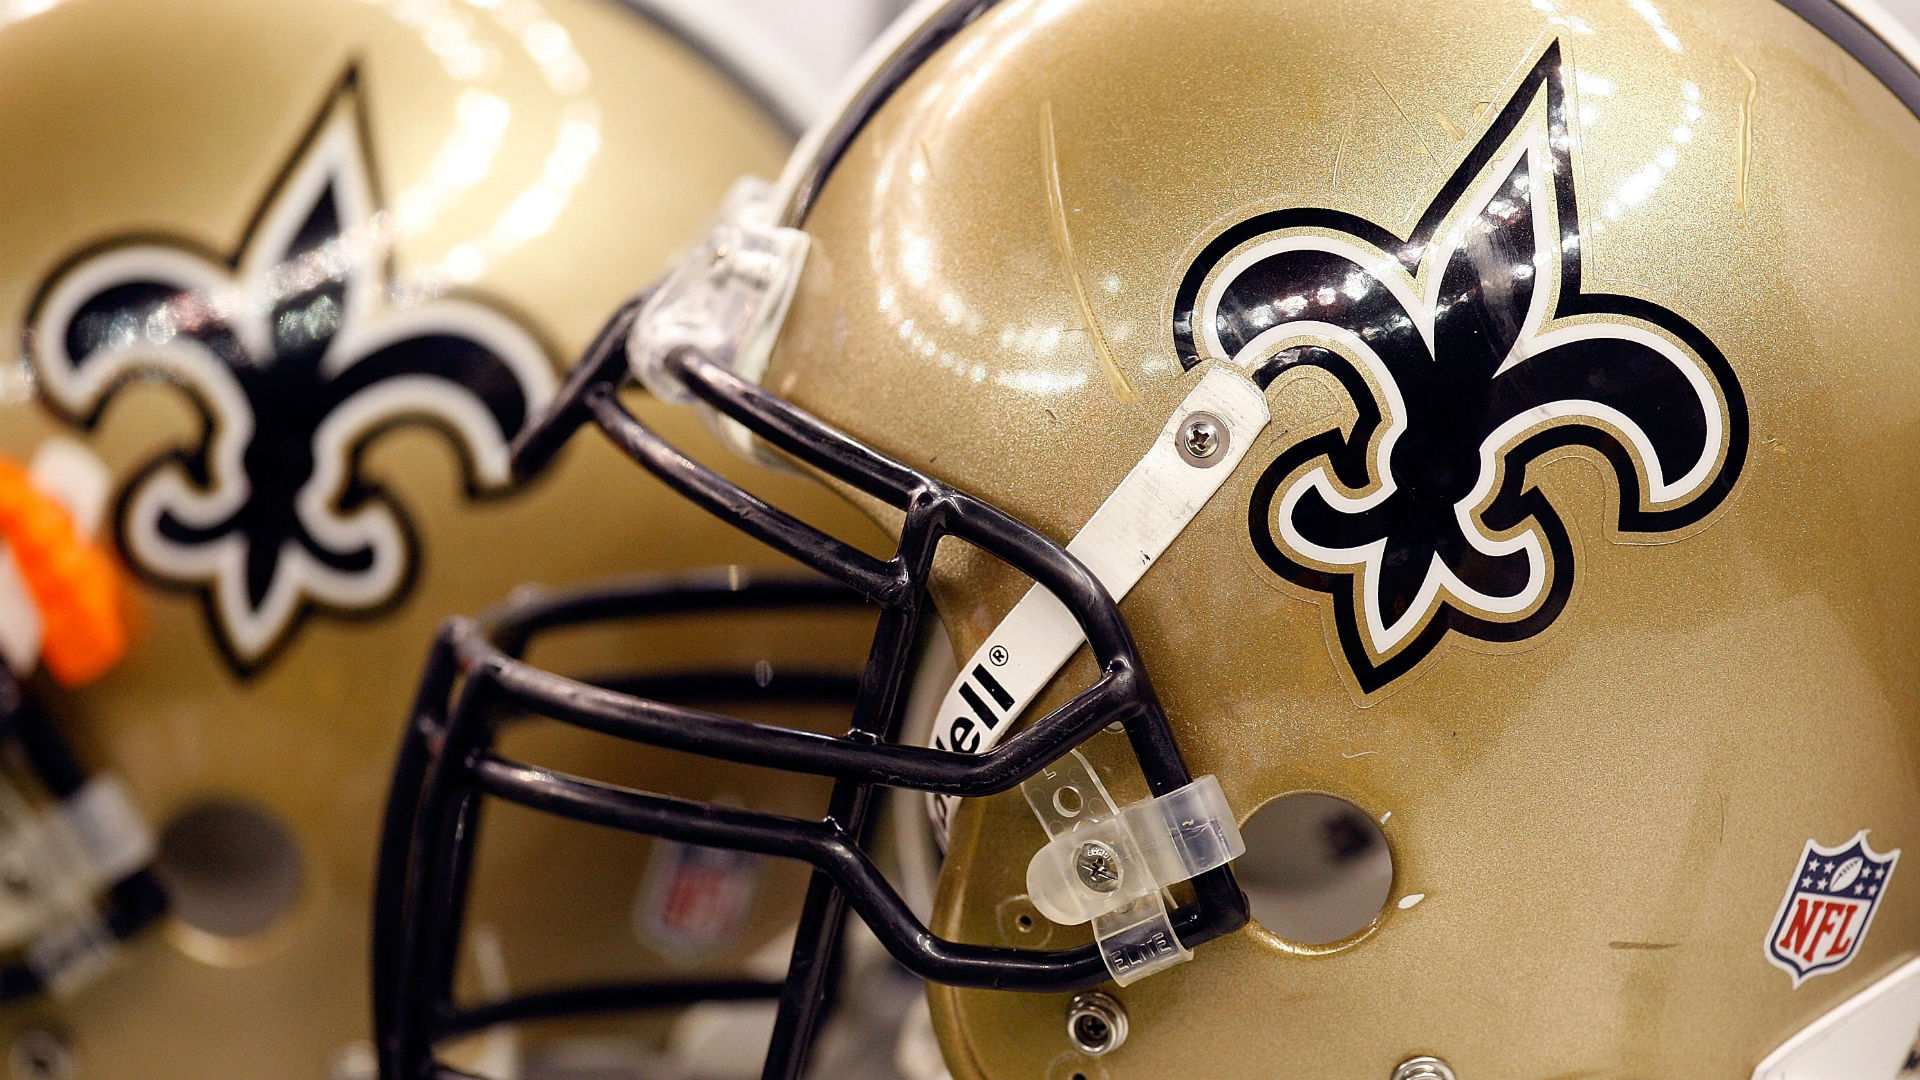 New Orleans Saints and Catholic Church scandal: What to know about allegations against NFL team